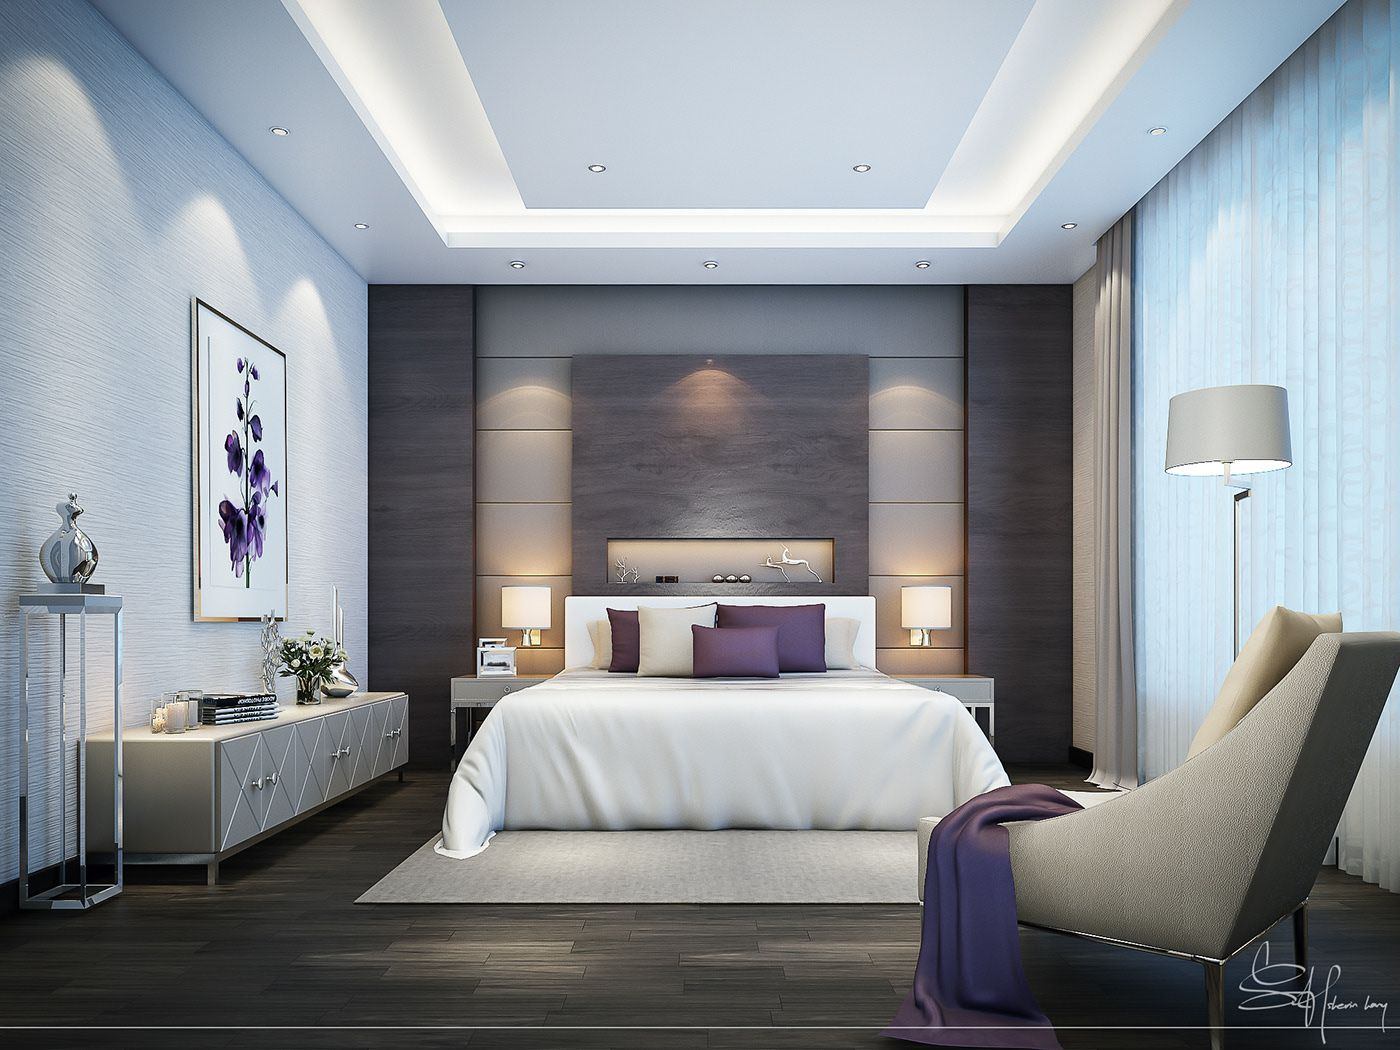 Contemporary Bedroom Interior design on Behance | Indian ...